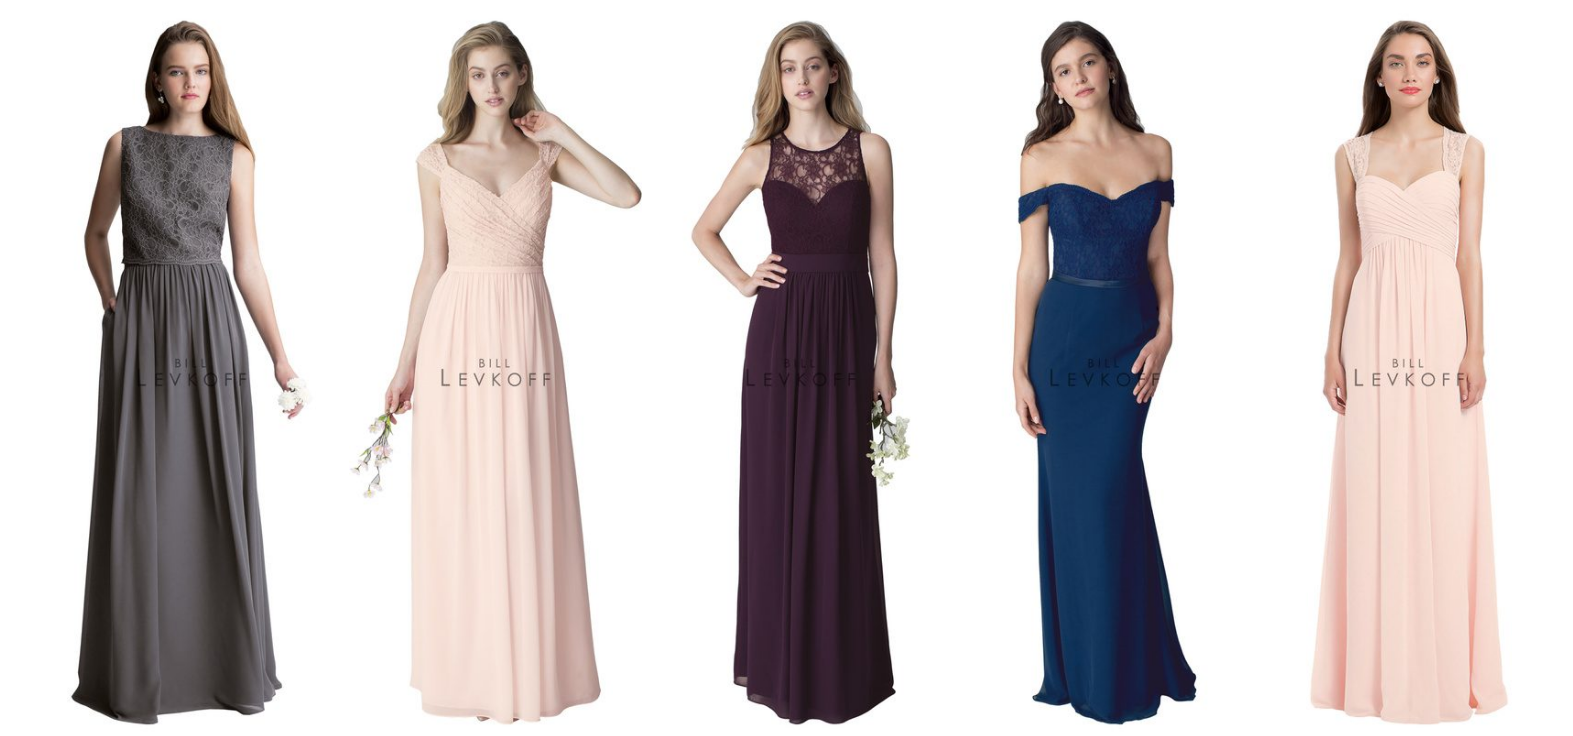 Bill Levkoff Bridesmaids Dresses - #LEVKOFF Bridesmaids Dresses - Bill Levkoff Dresses online - Chiffon and Lace Bridesmaids Dresses - Long Bridesmaids Dresses